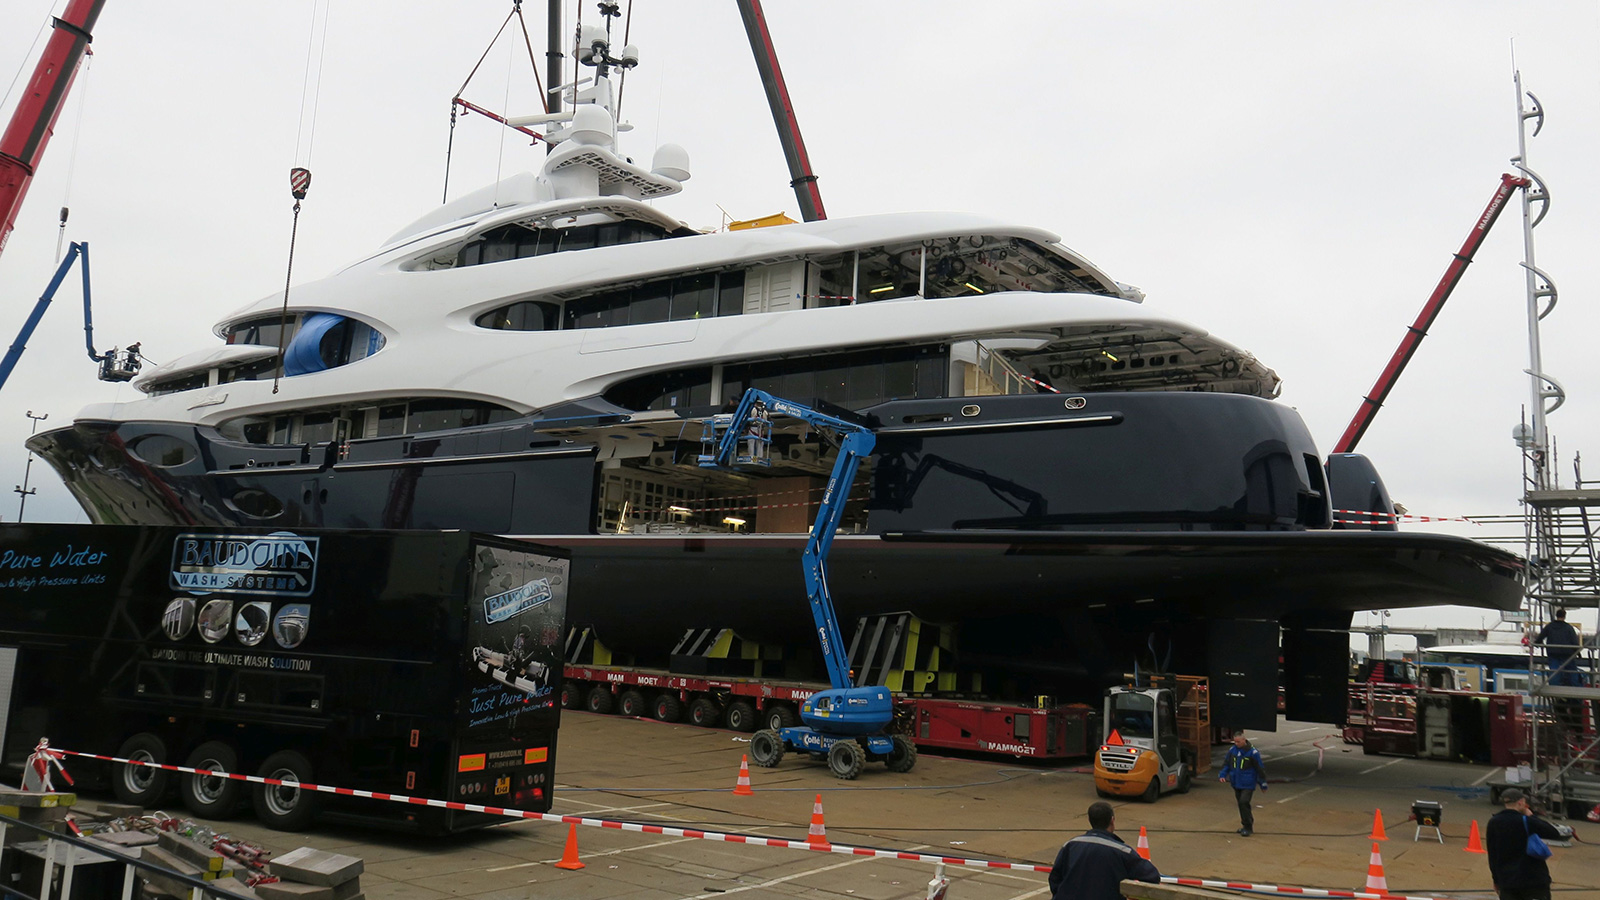 side-view-of-oceanco-super-yacht-y715